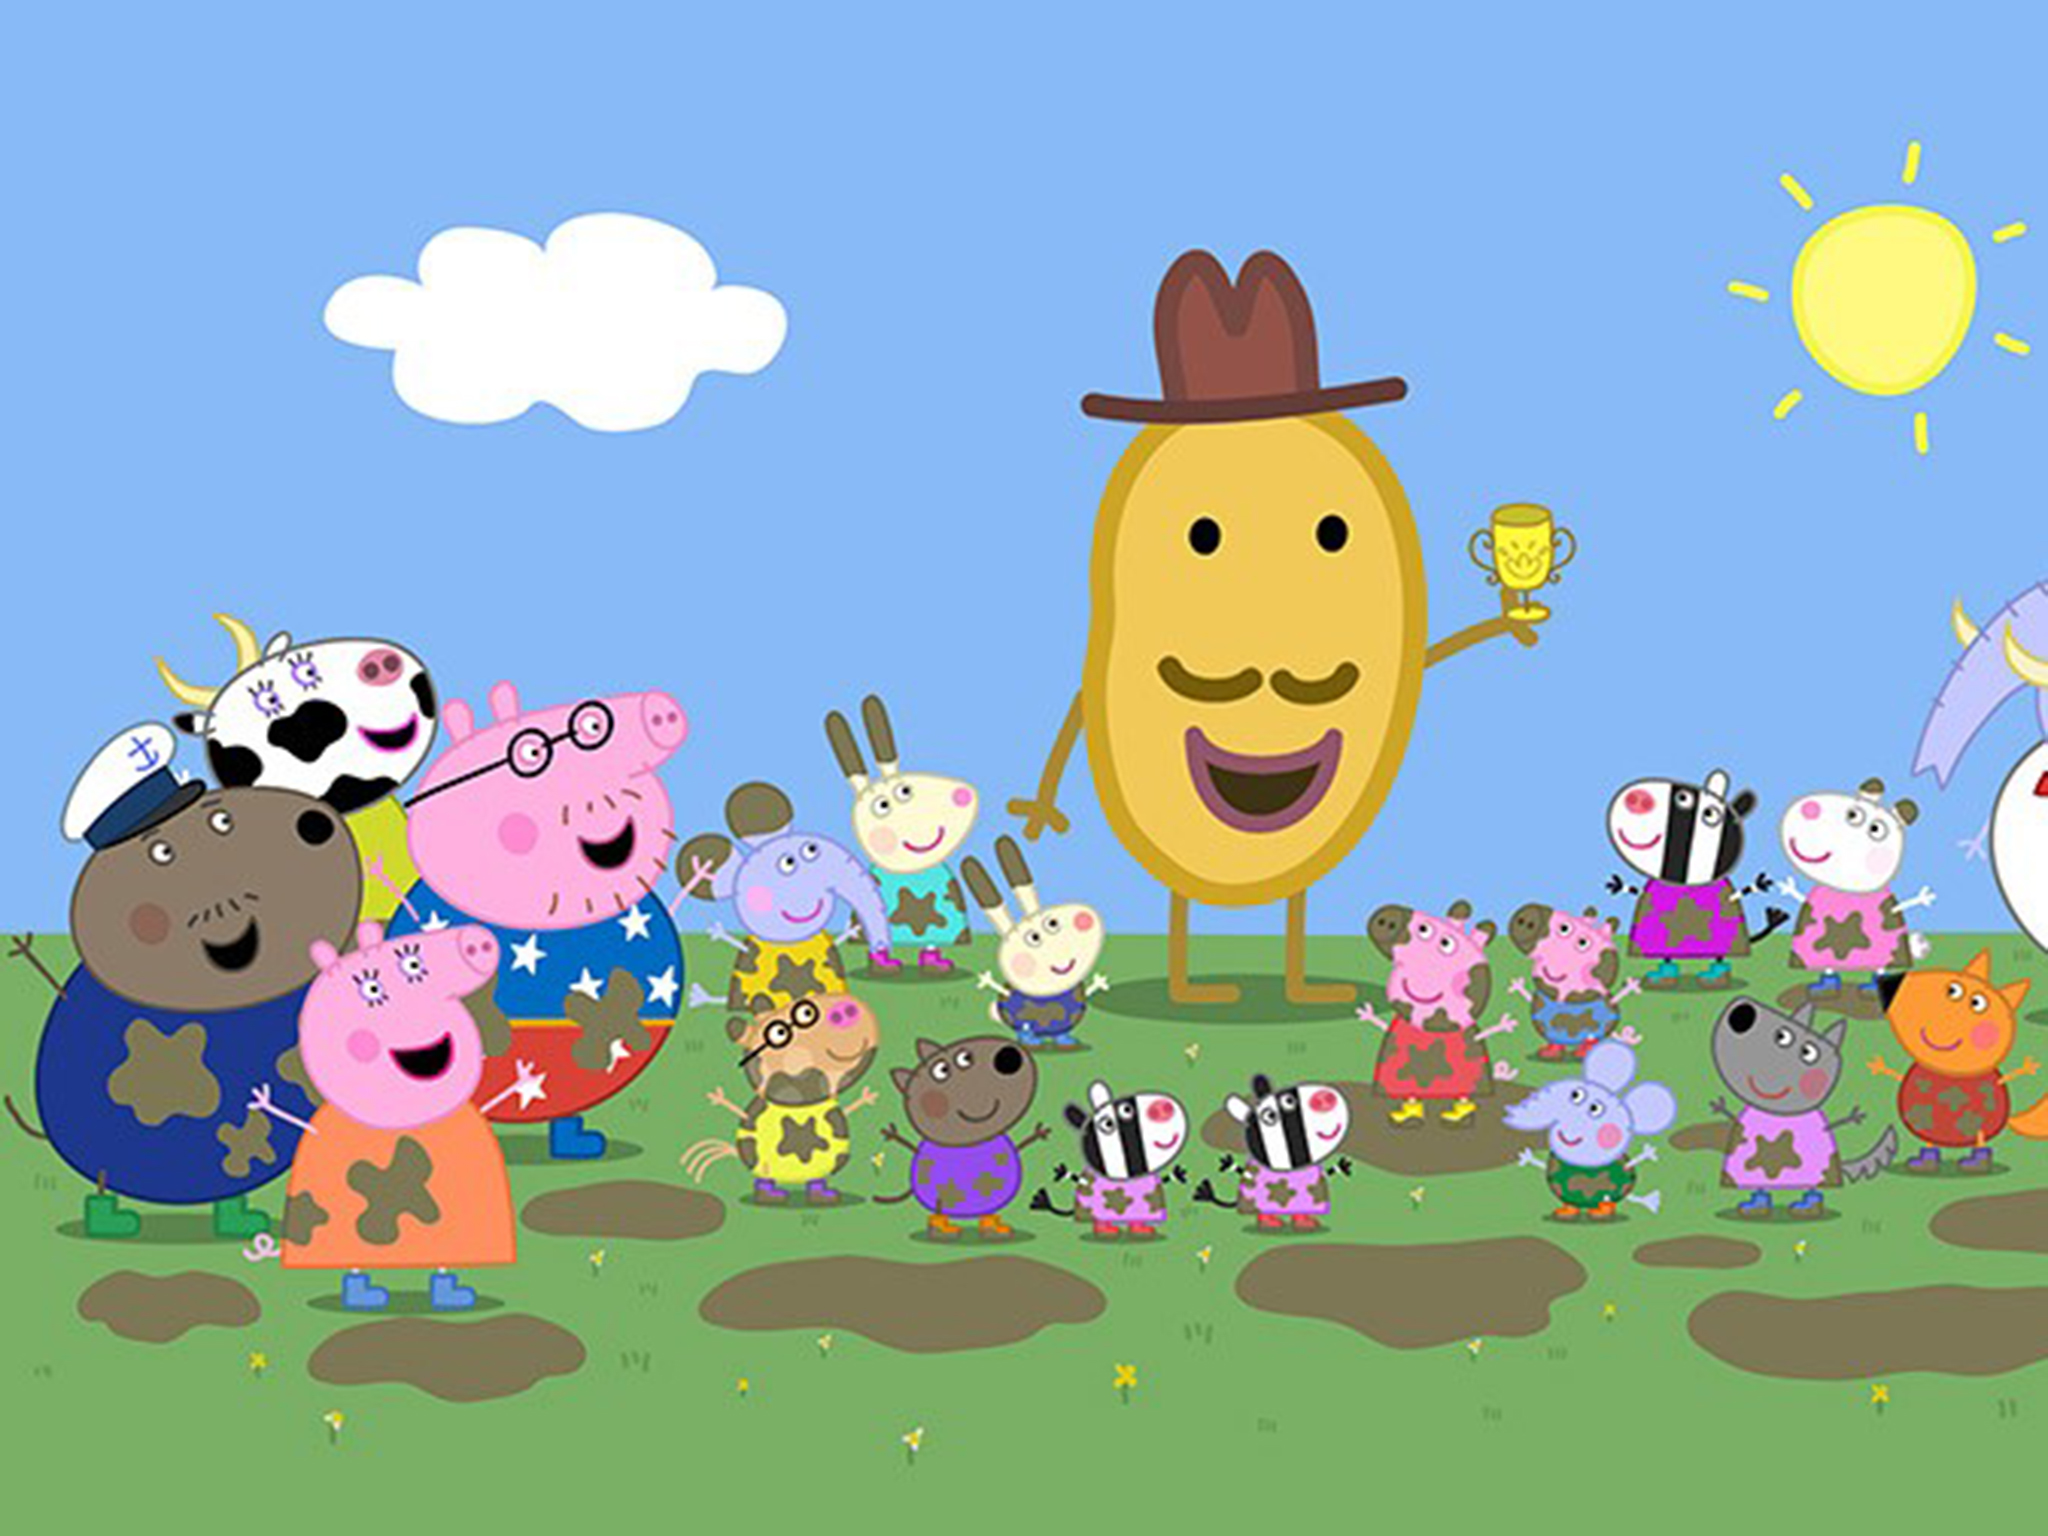 Peppa Pig Wallpapers High Quality